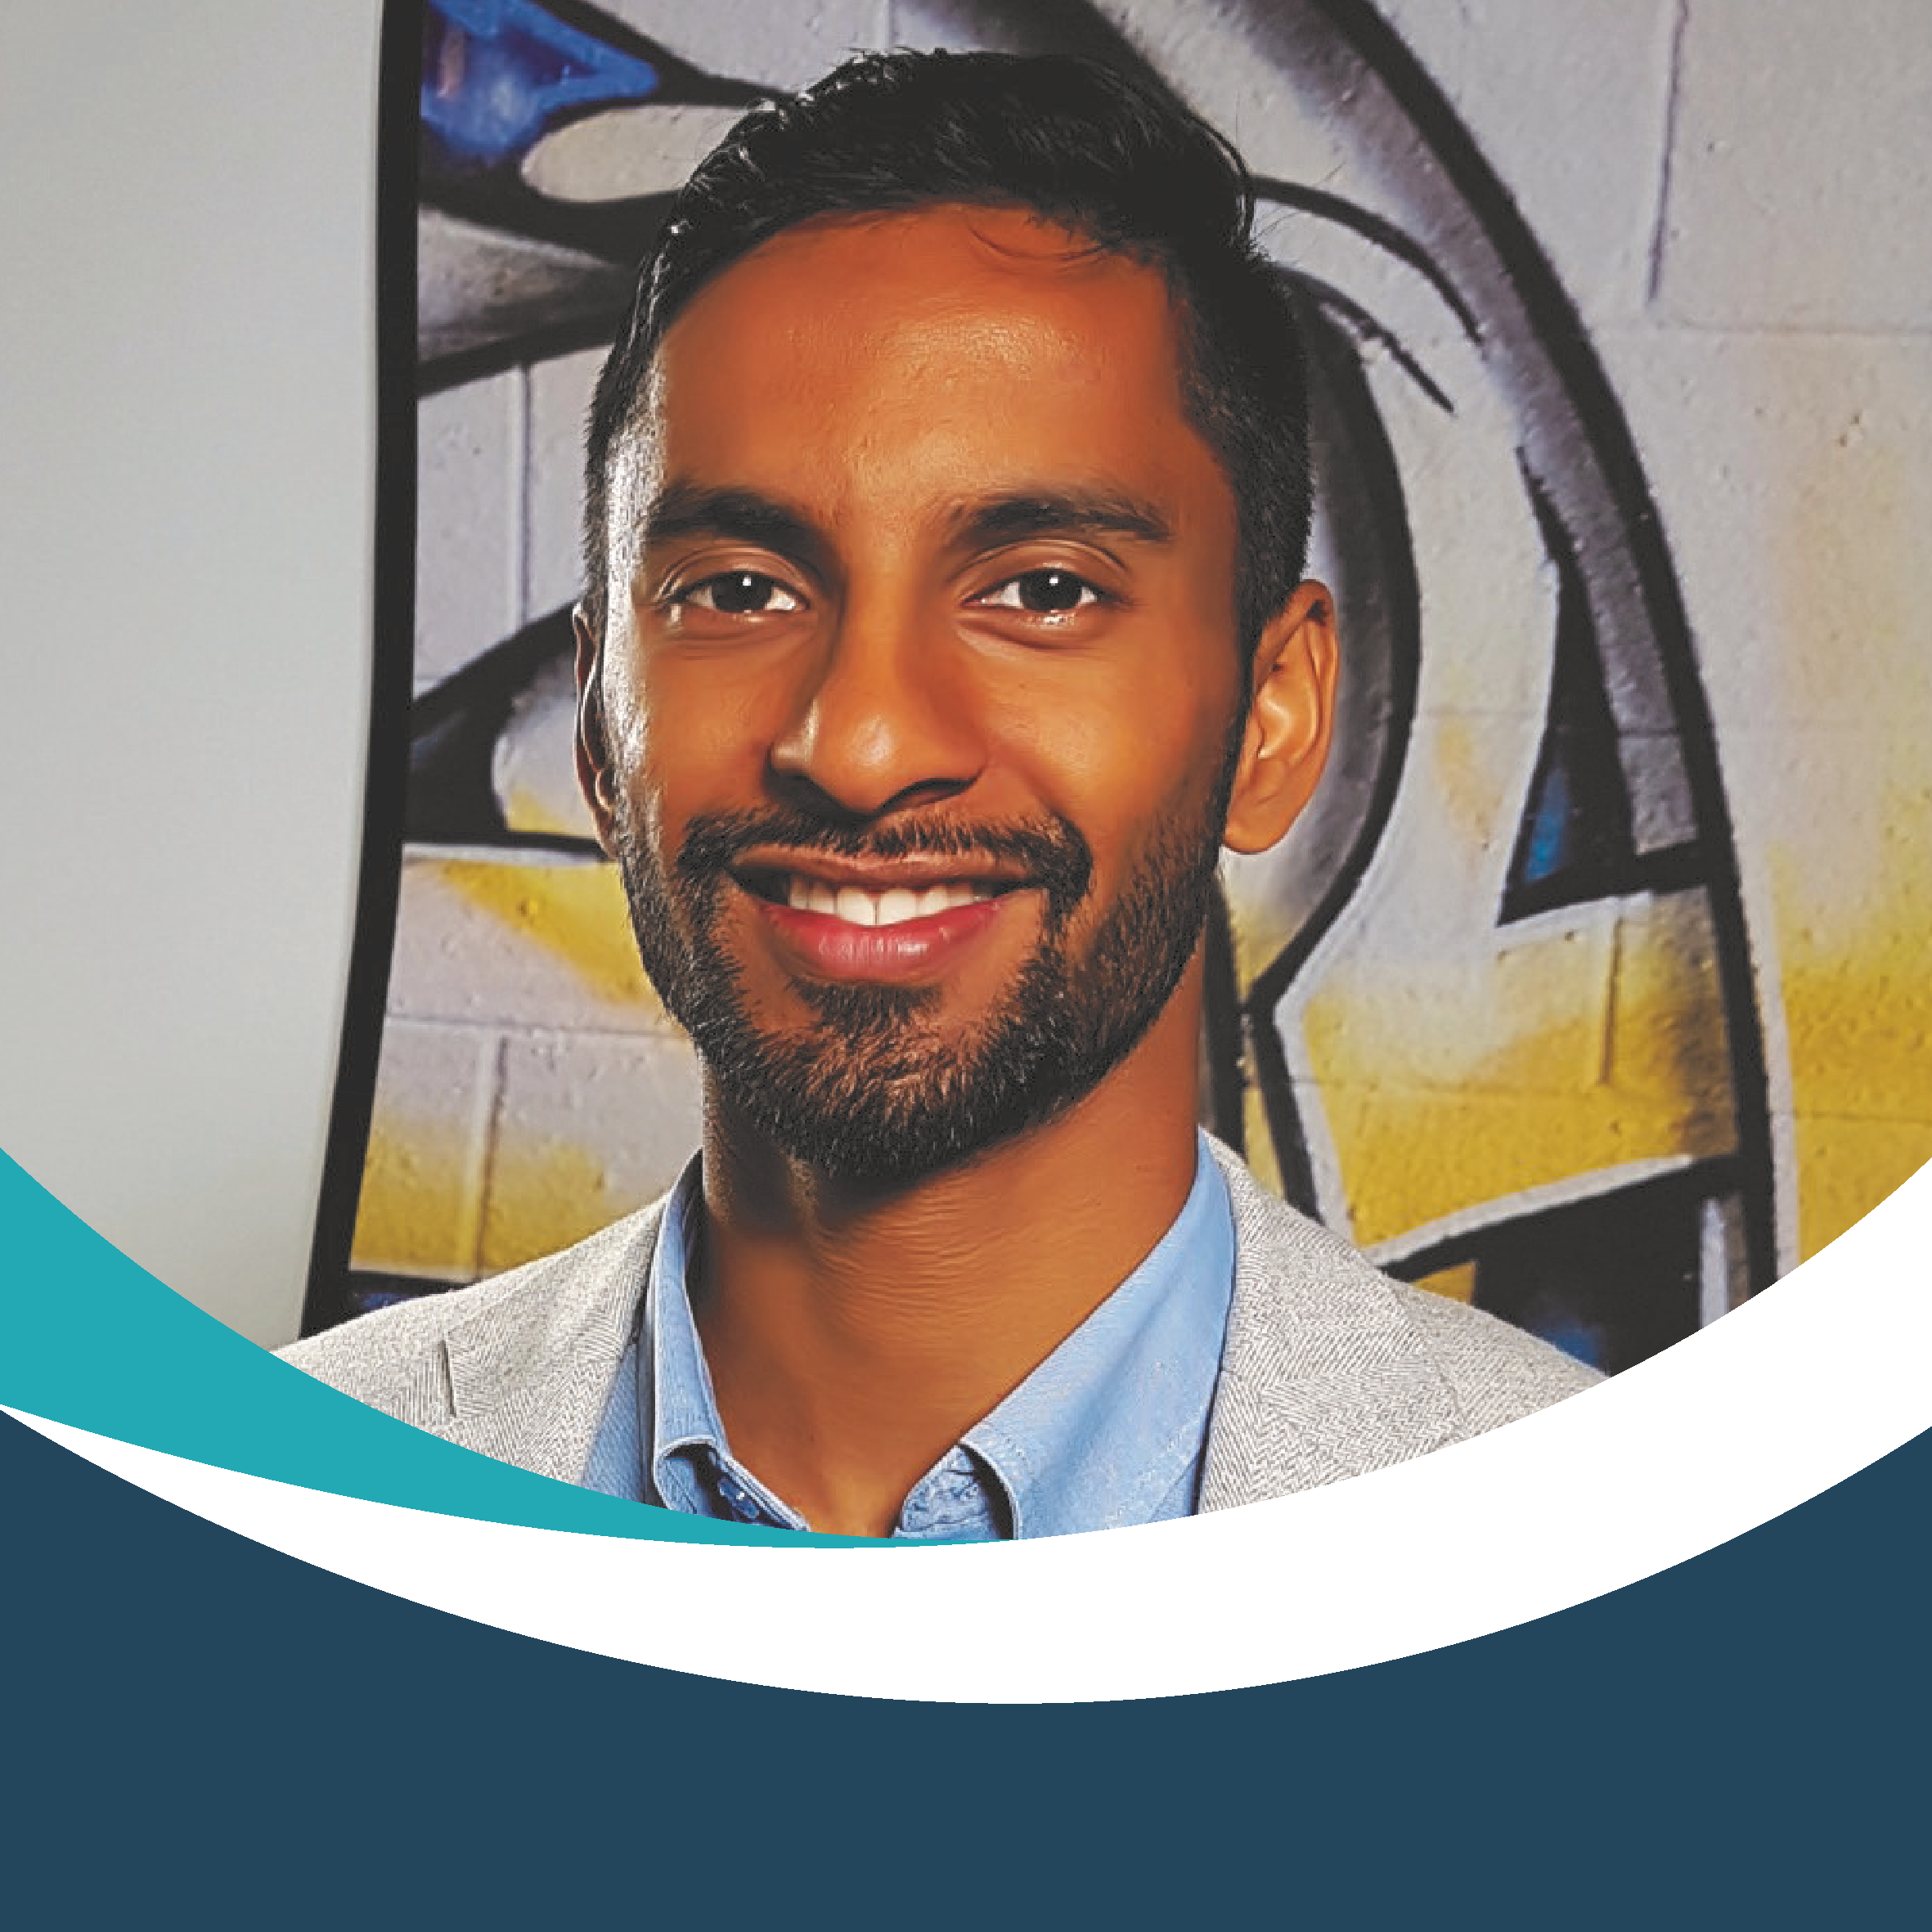 Prime time with Bobby Seagull